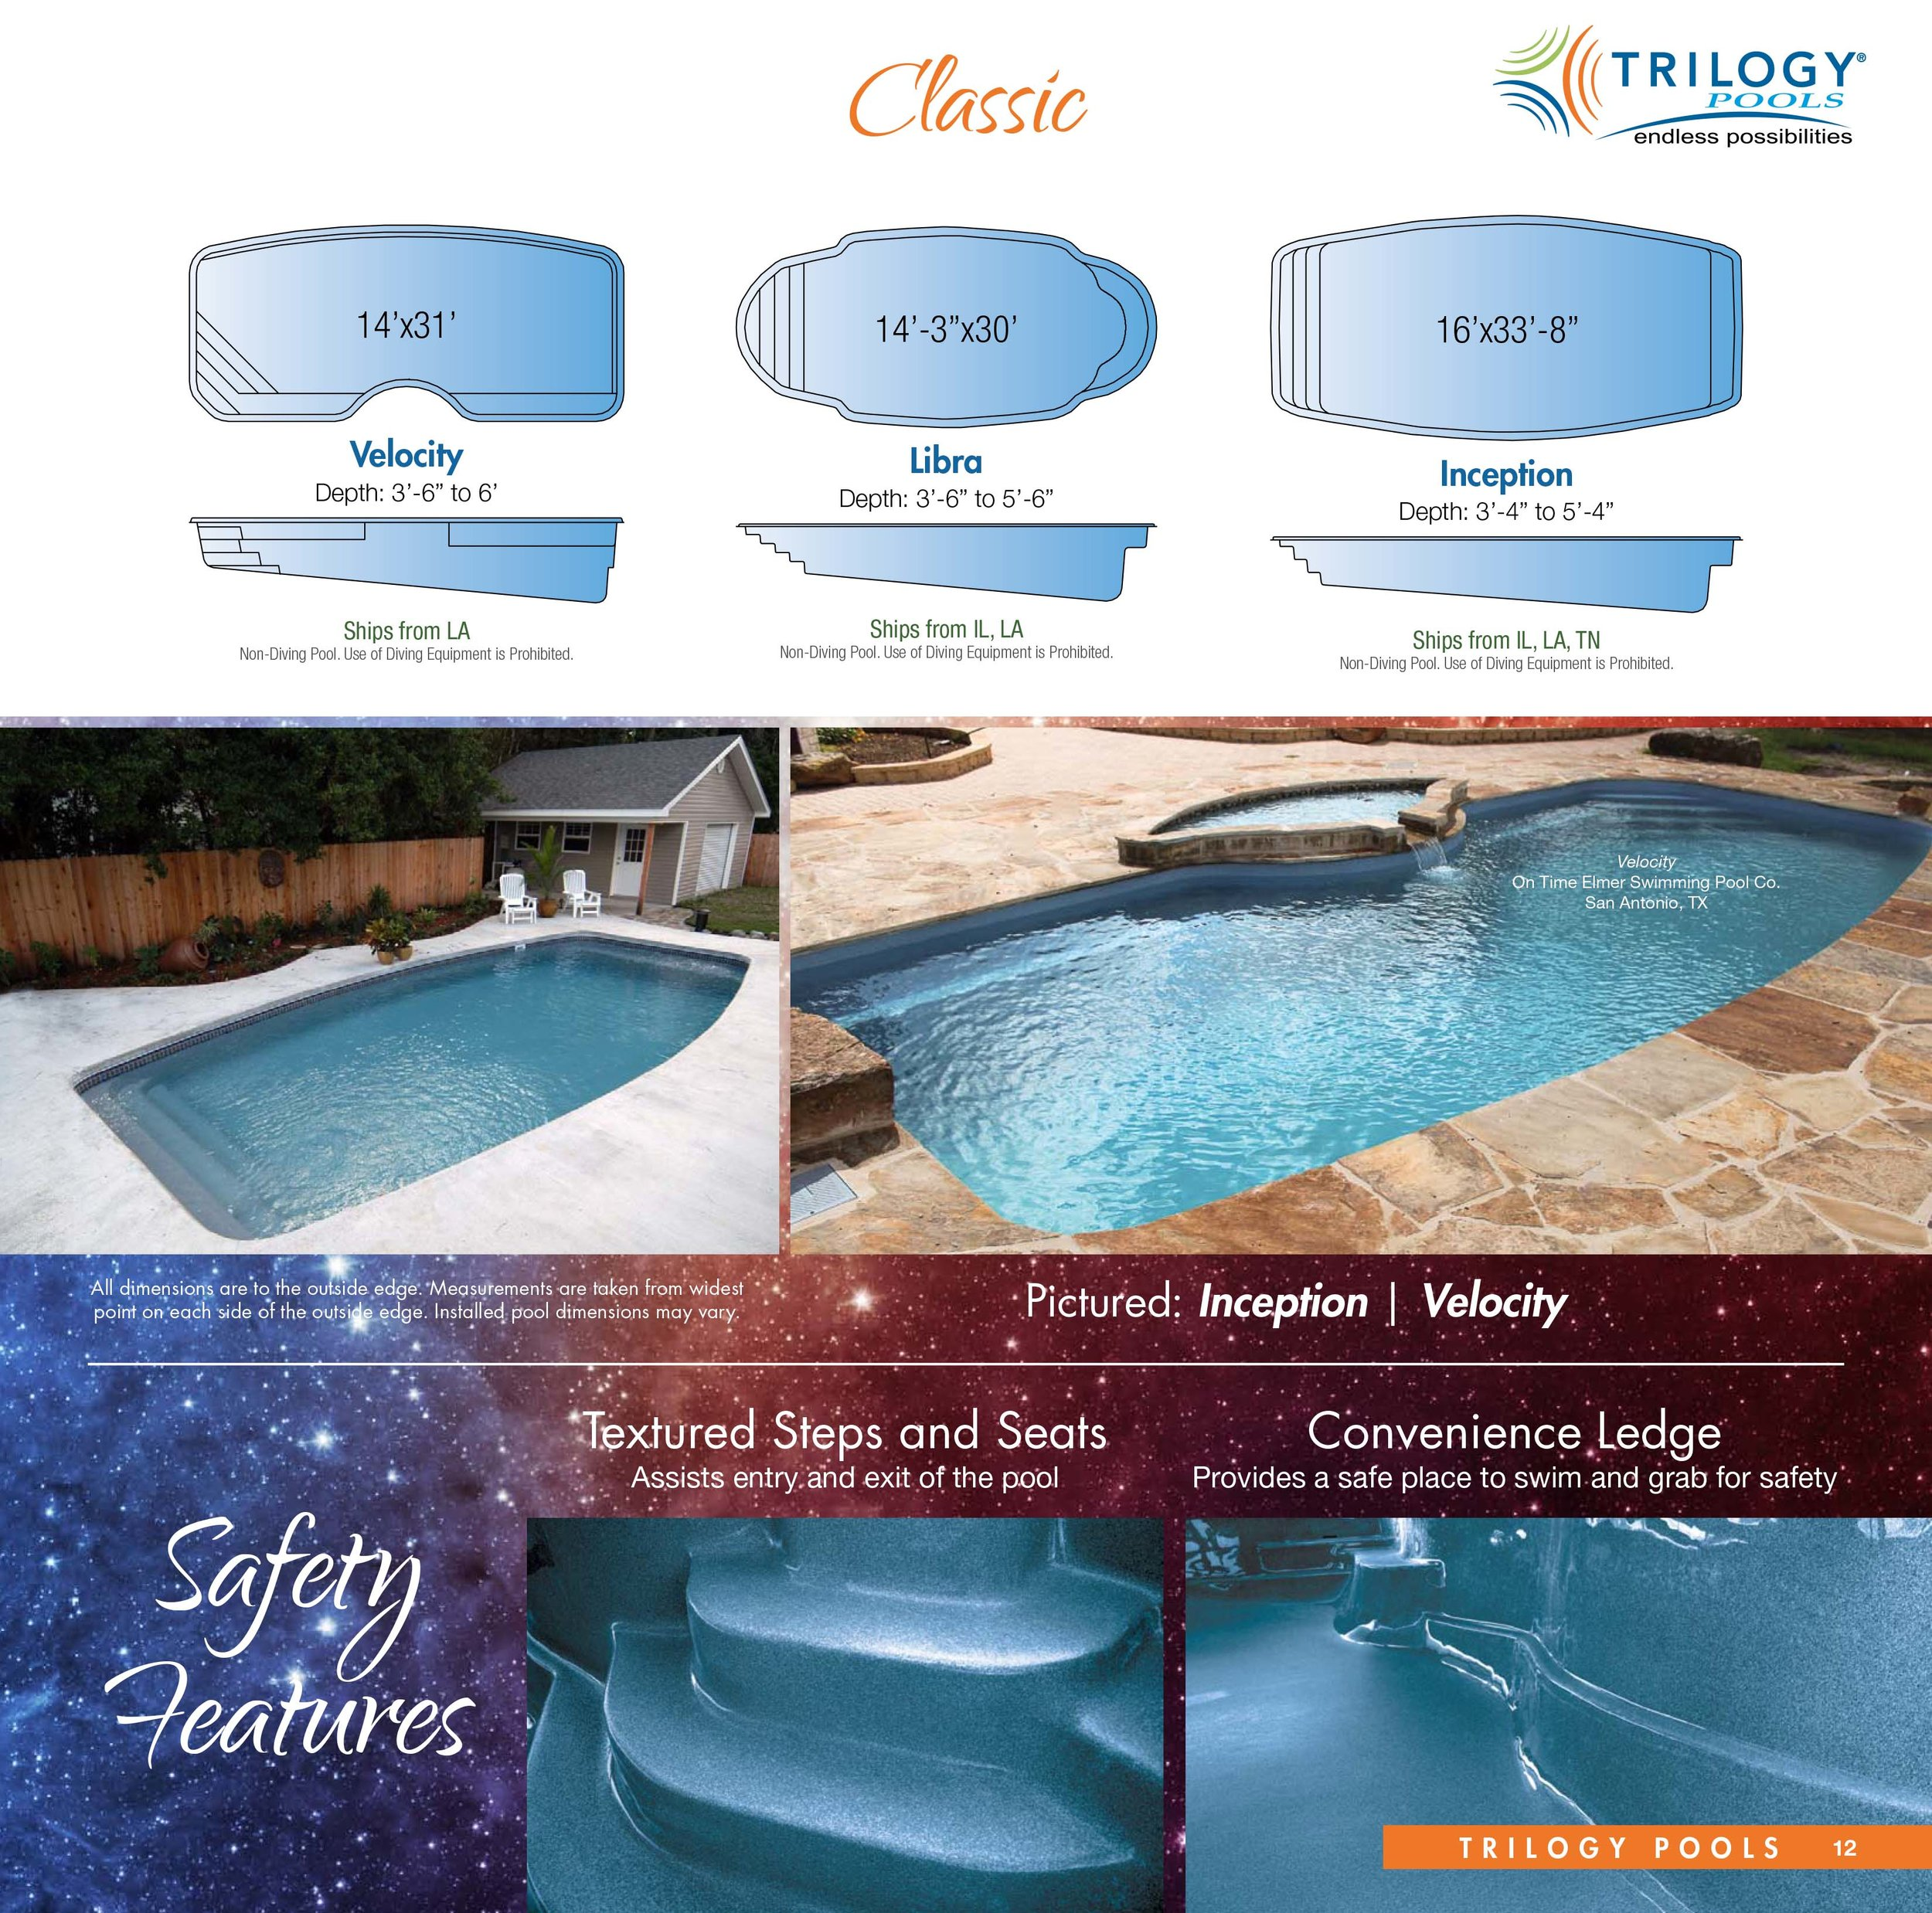 Jacuzzi Pool Dimensions Trilogy Pools And Spas Gary S Pool And Patio